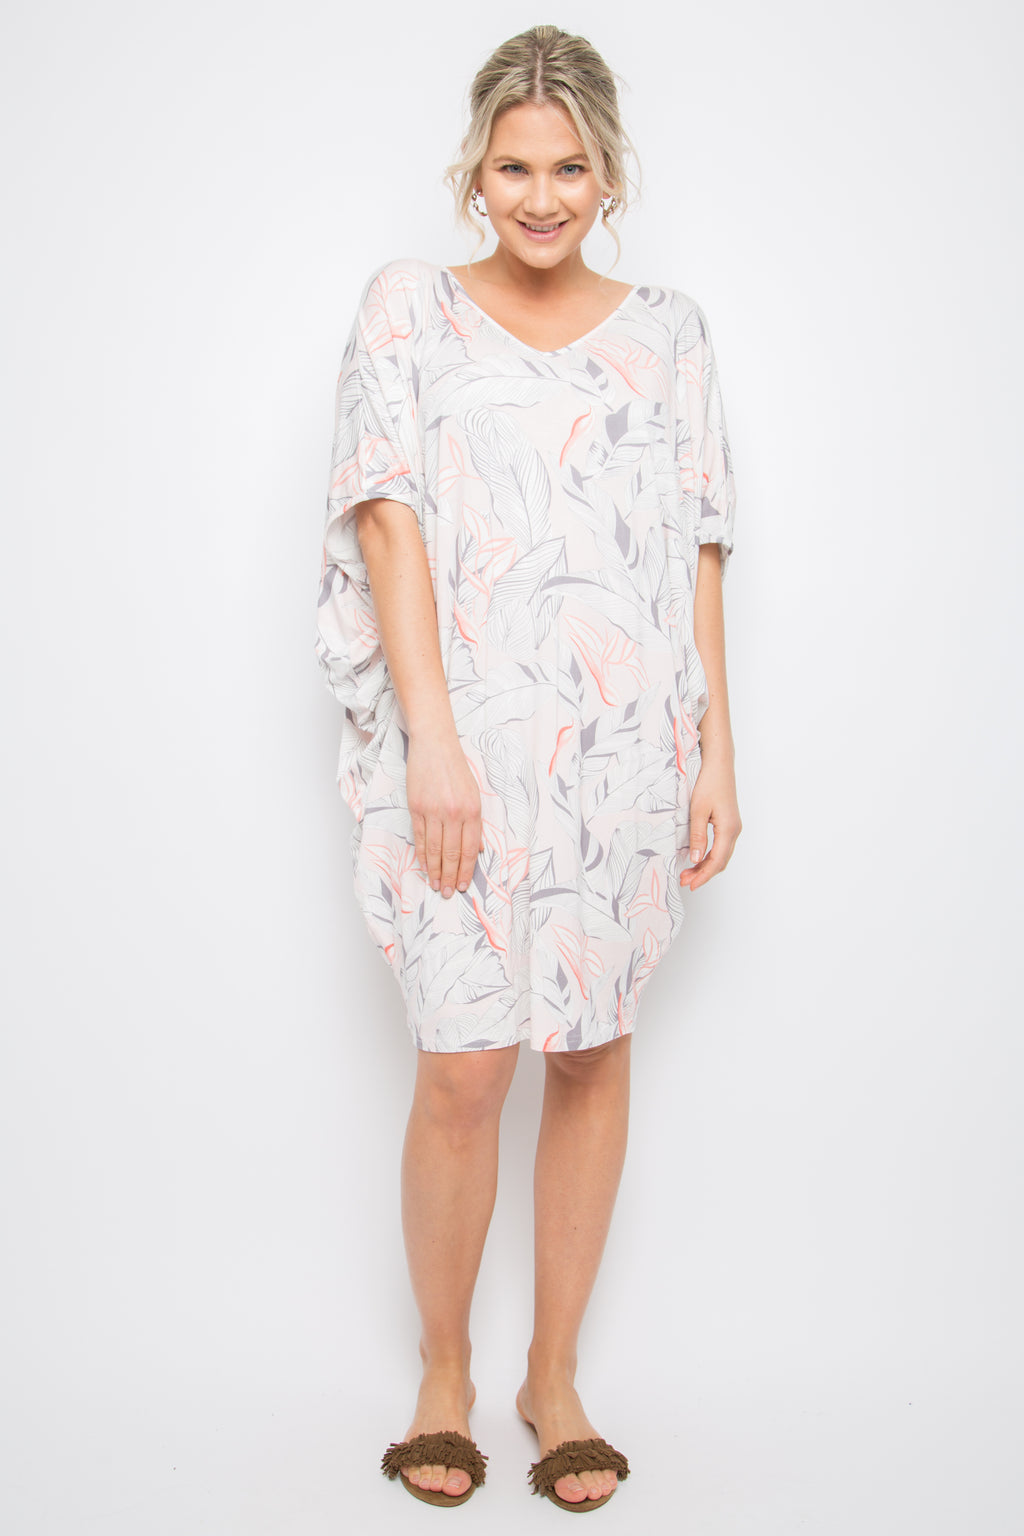 Model wears batwing dress that is white with pink and grey leafy print